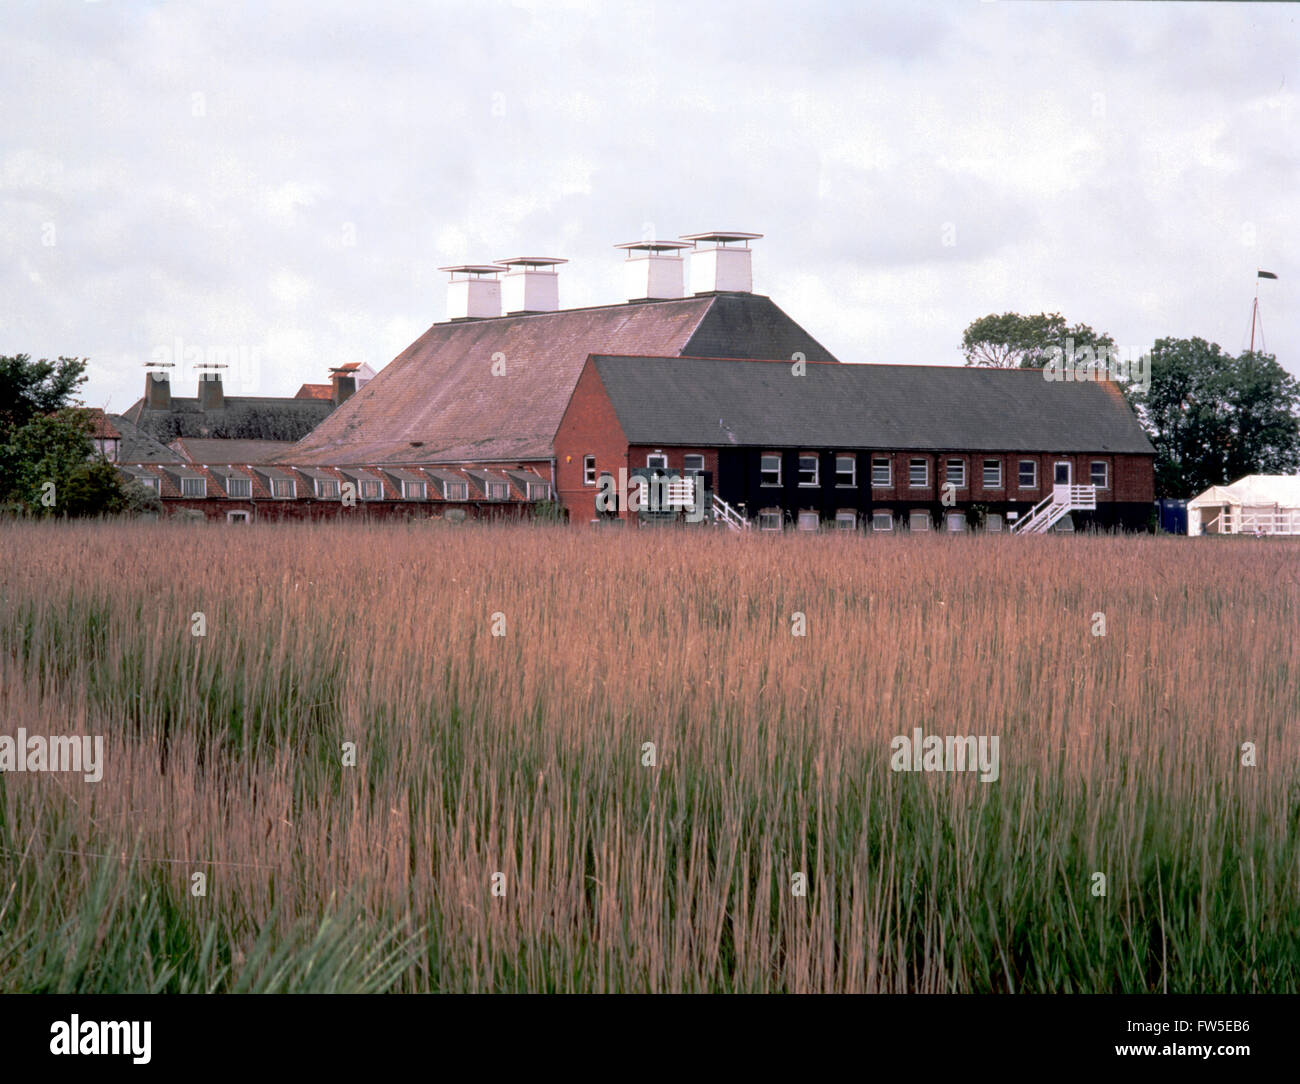 BRITTEN  - SNAPE MALTINGS. Exterior of Snape Maltings Concert Hall.  Promenade from reed beds. - Stock Image